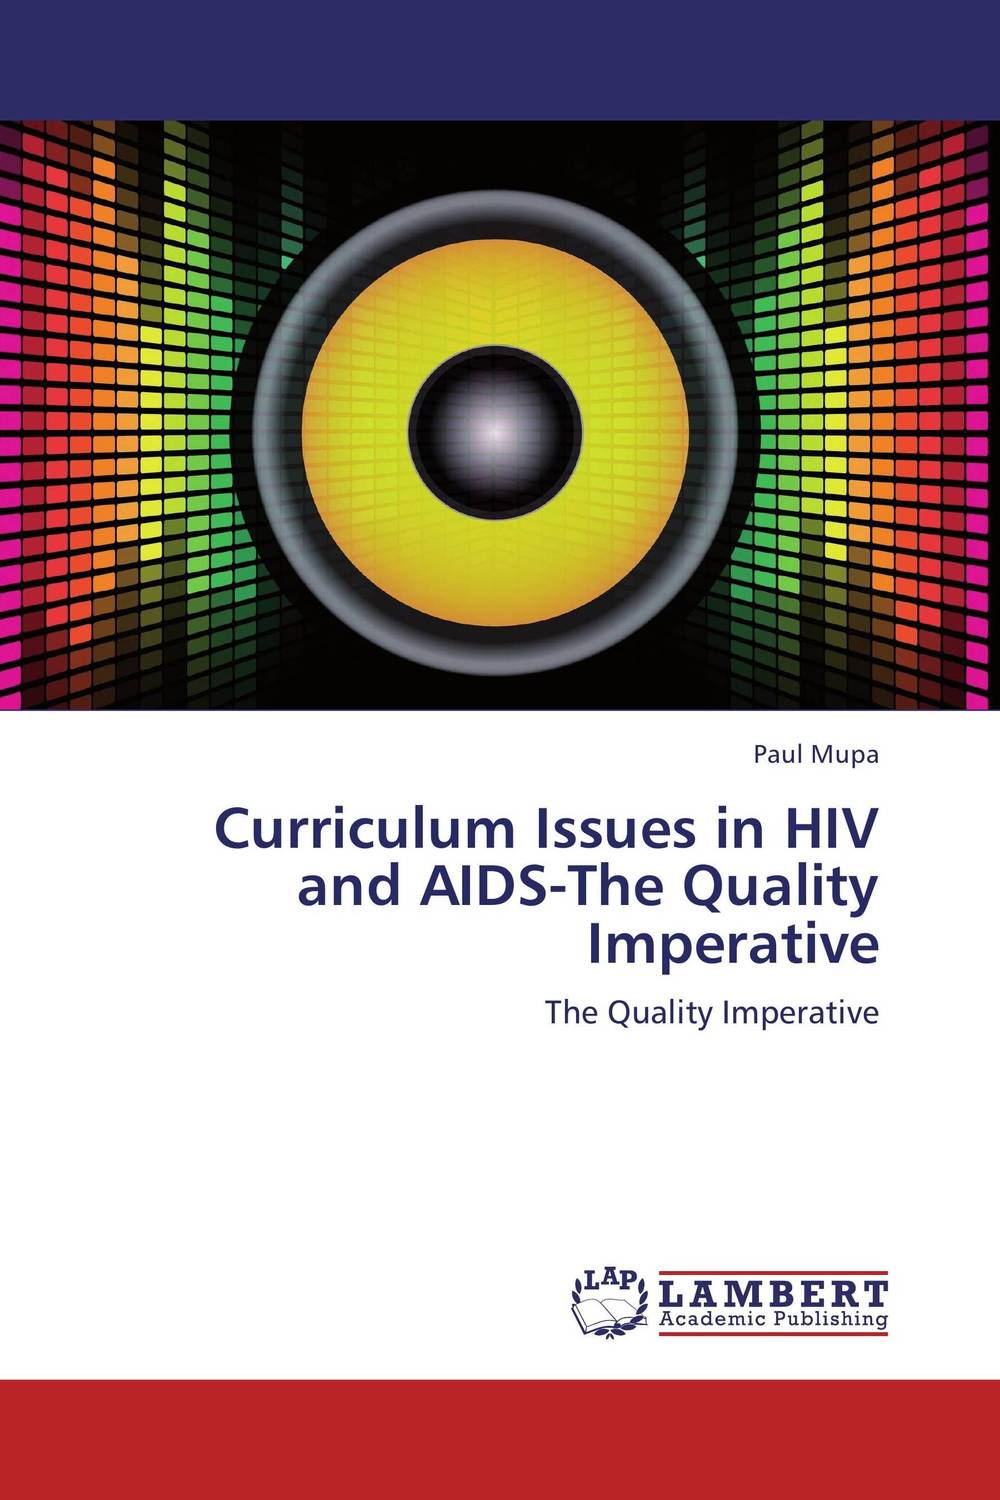 Curriculum Issues in HIV and AIDS-The Quality Imperative chidozie mbada and yewande ogunmoyole exercise capacity and health related quality of life in hiv aids